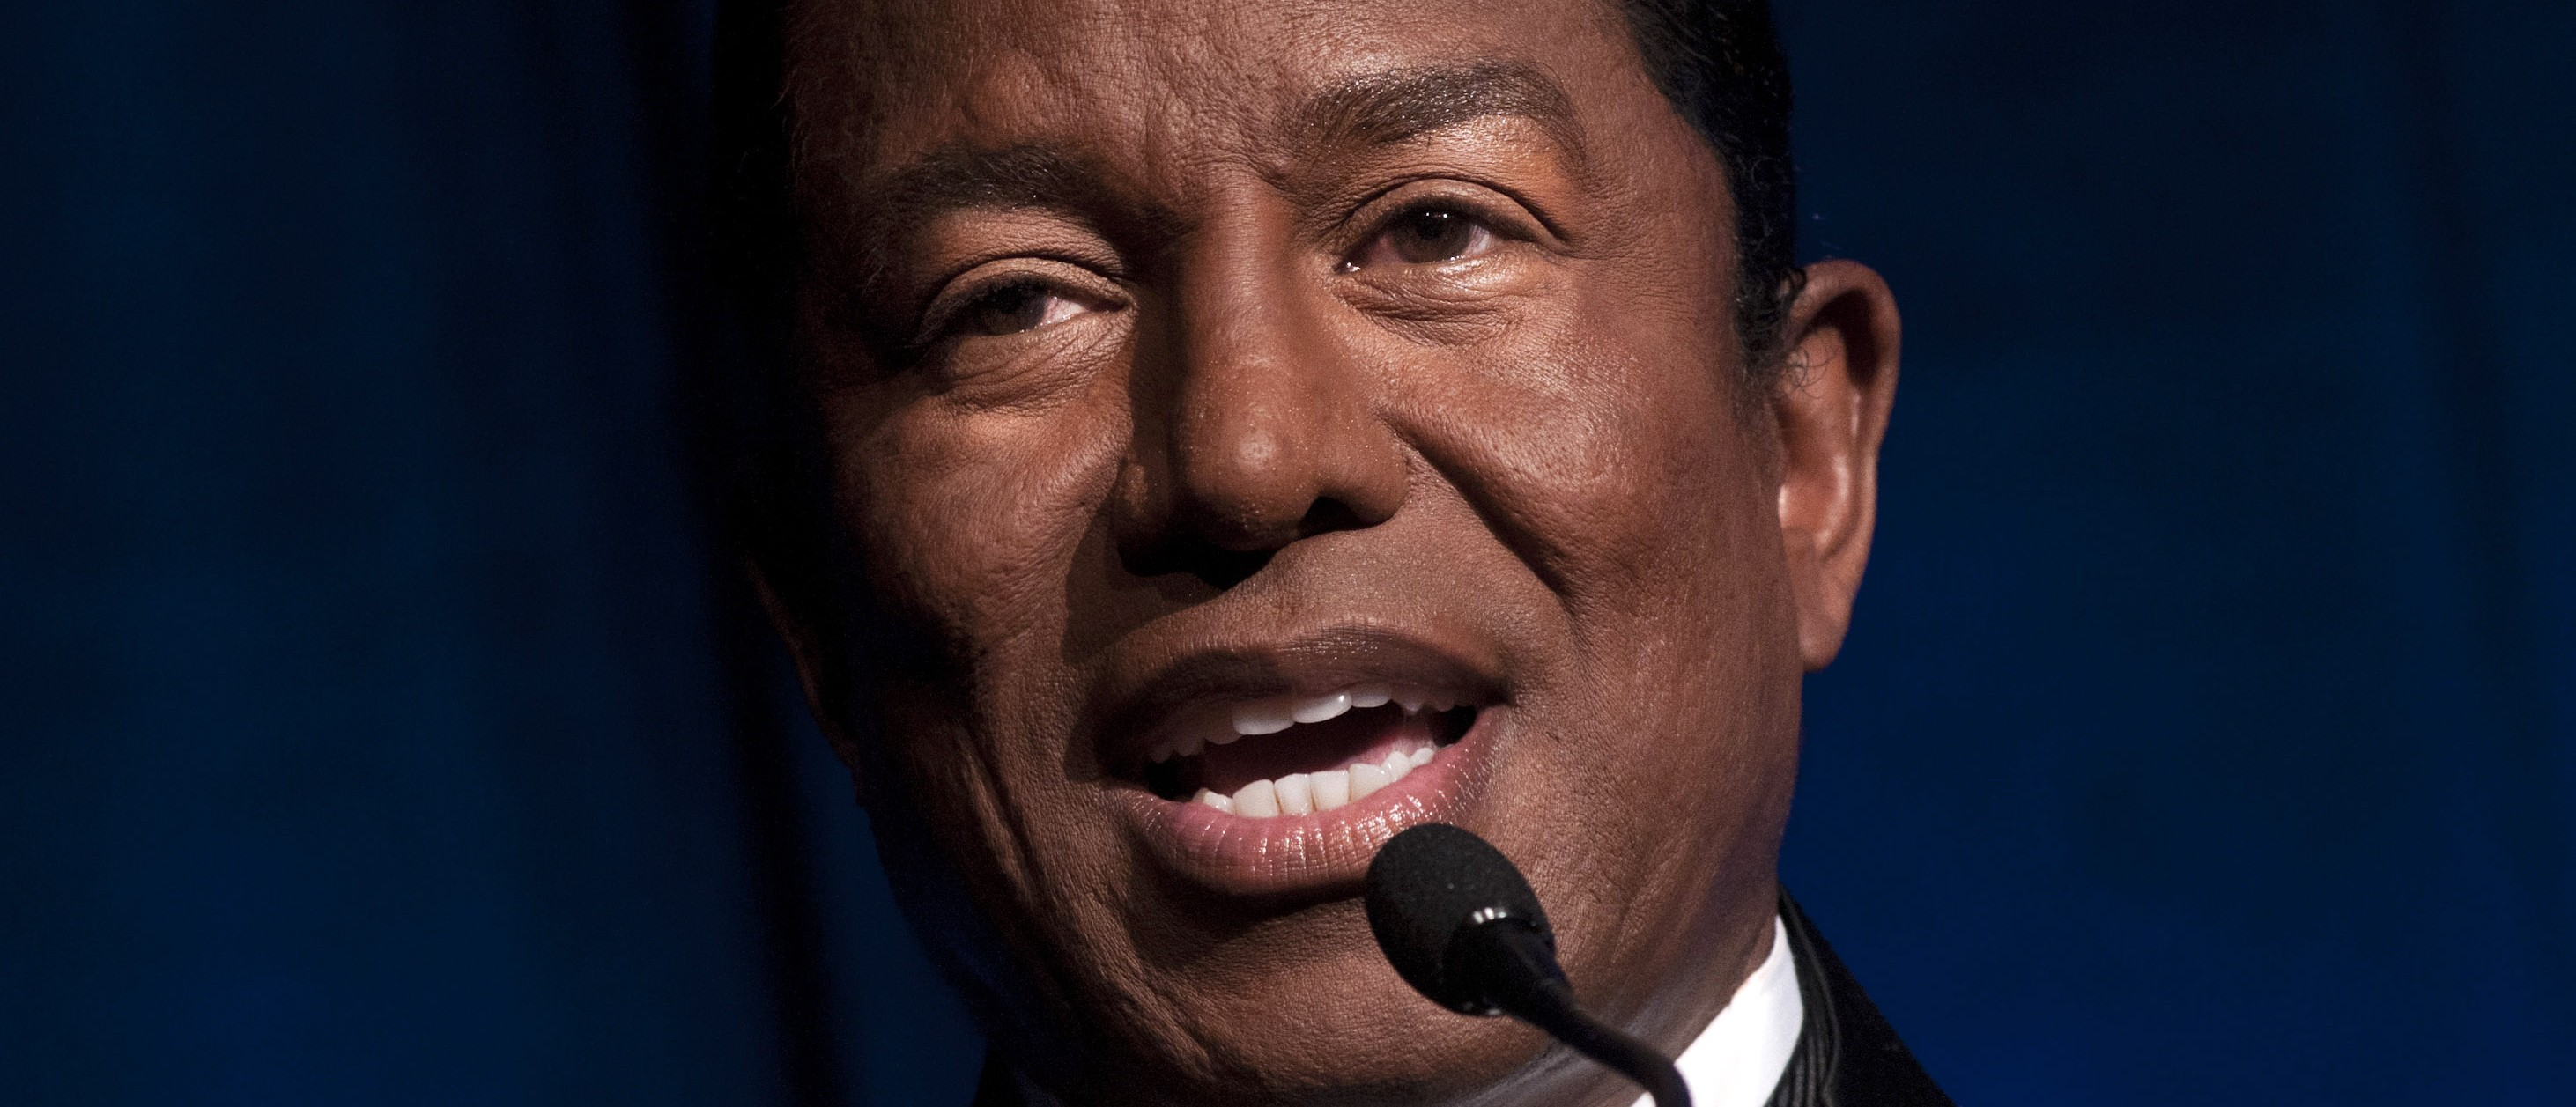 Jermaine Jackson goes after Donald Trump